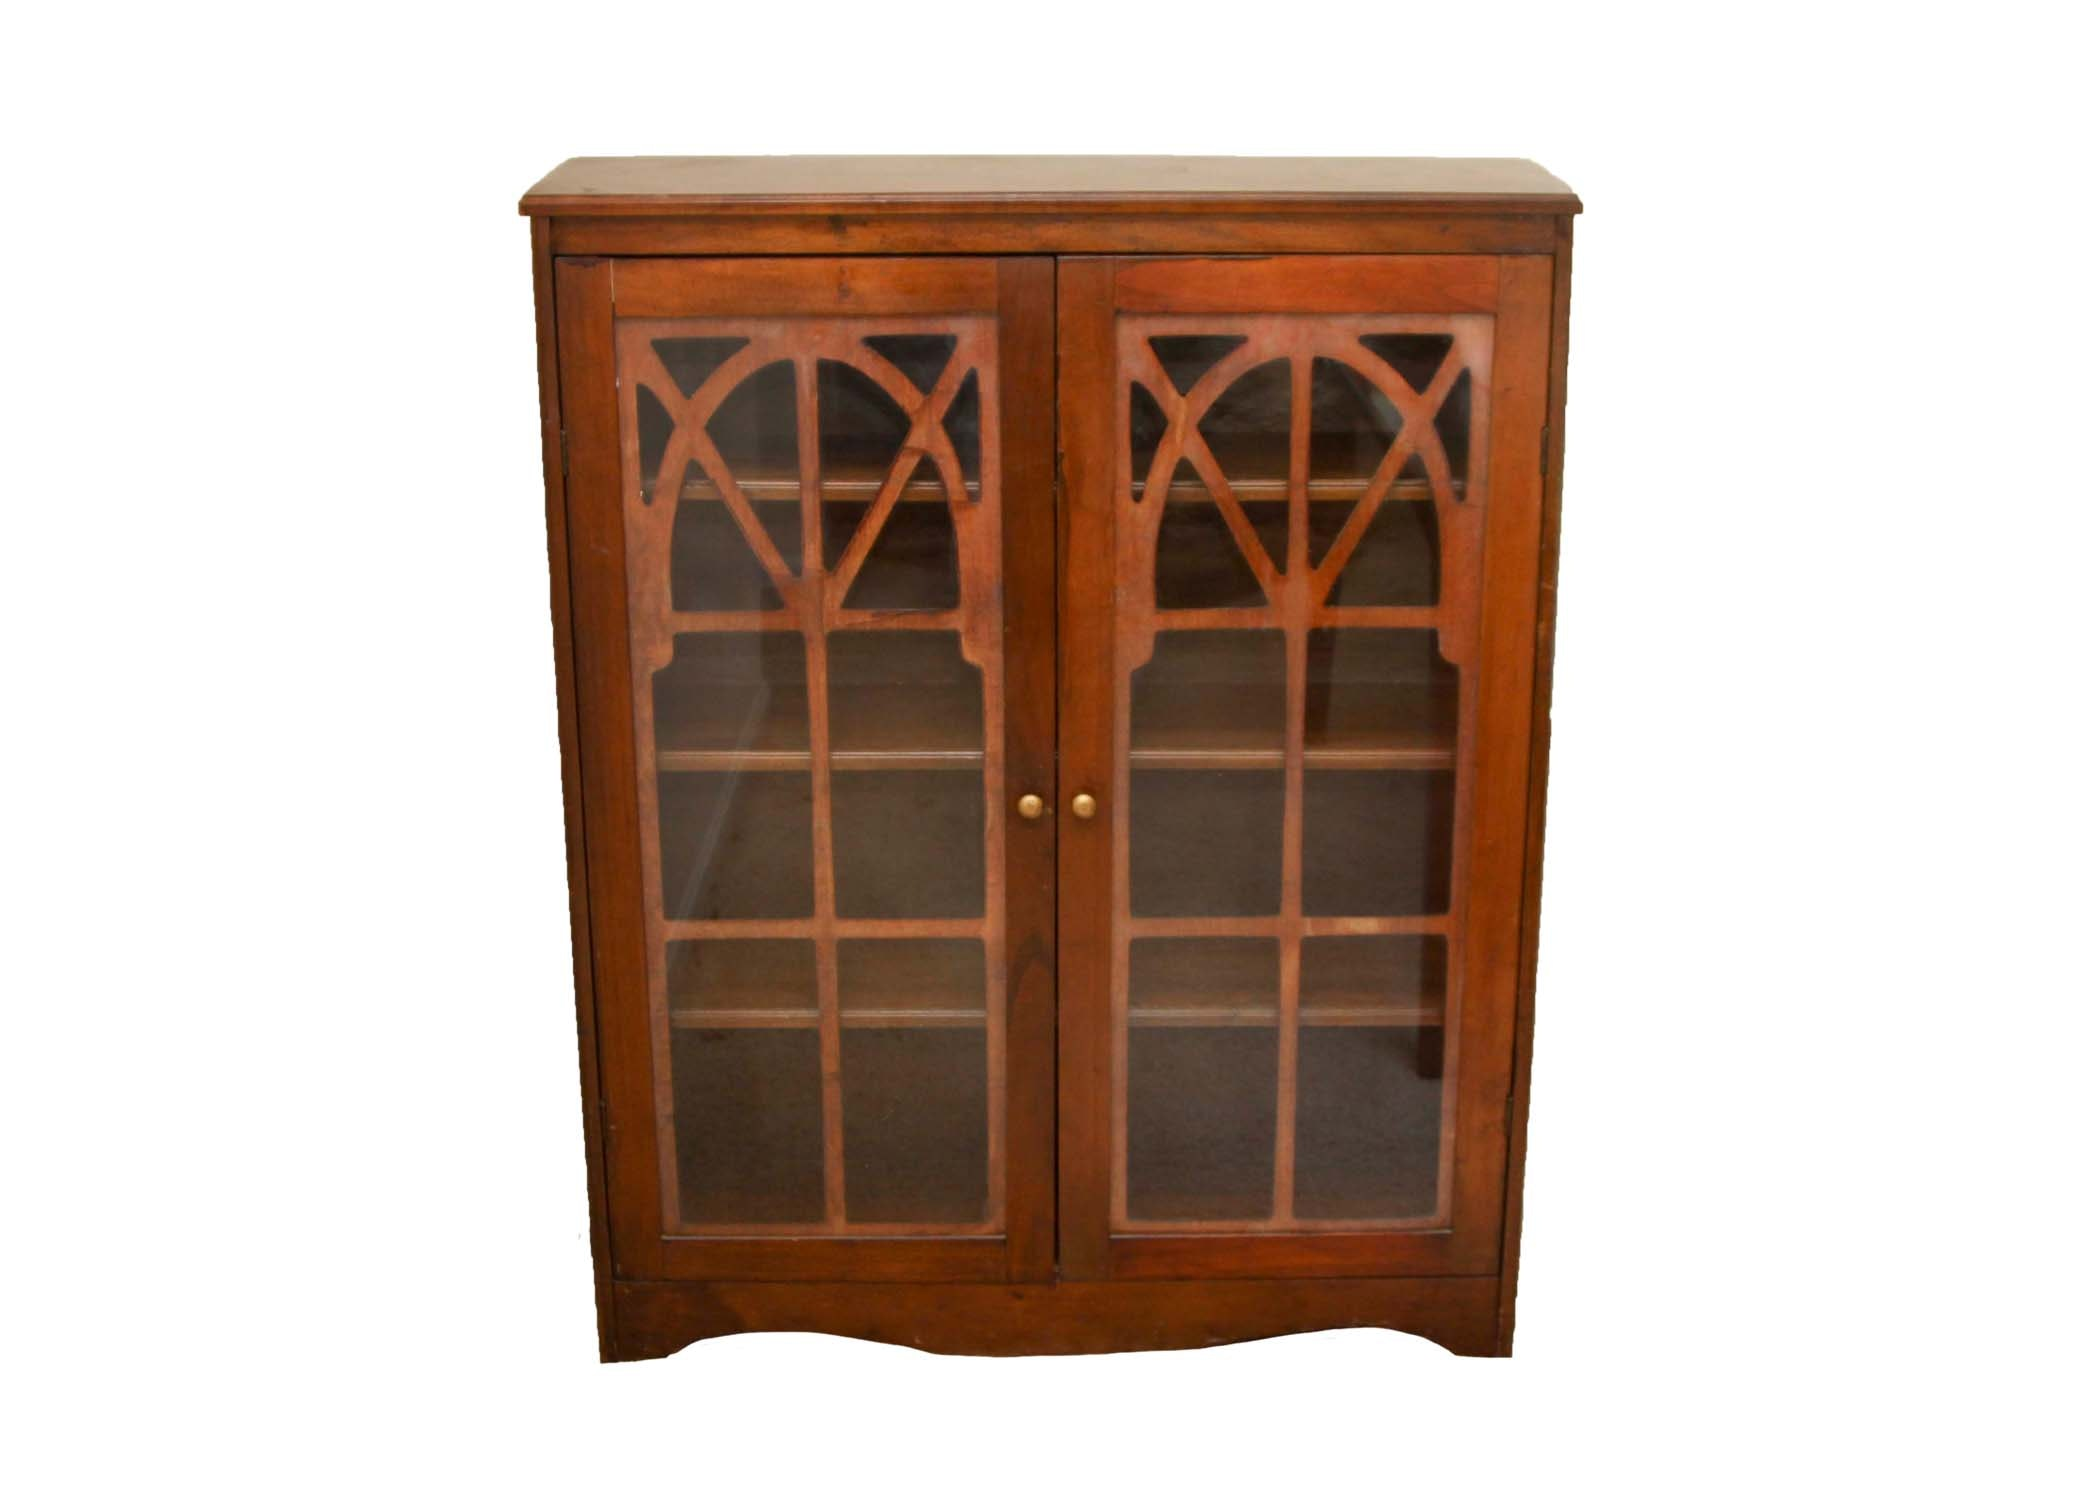 Vintage Mahogany Bookcase with Glass Doors